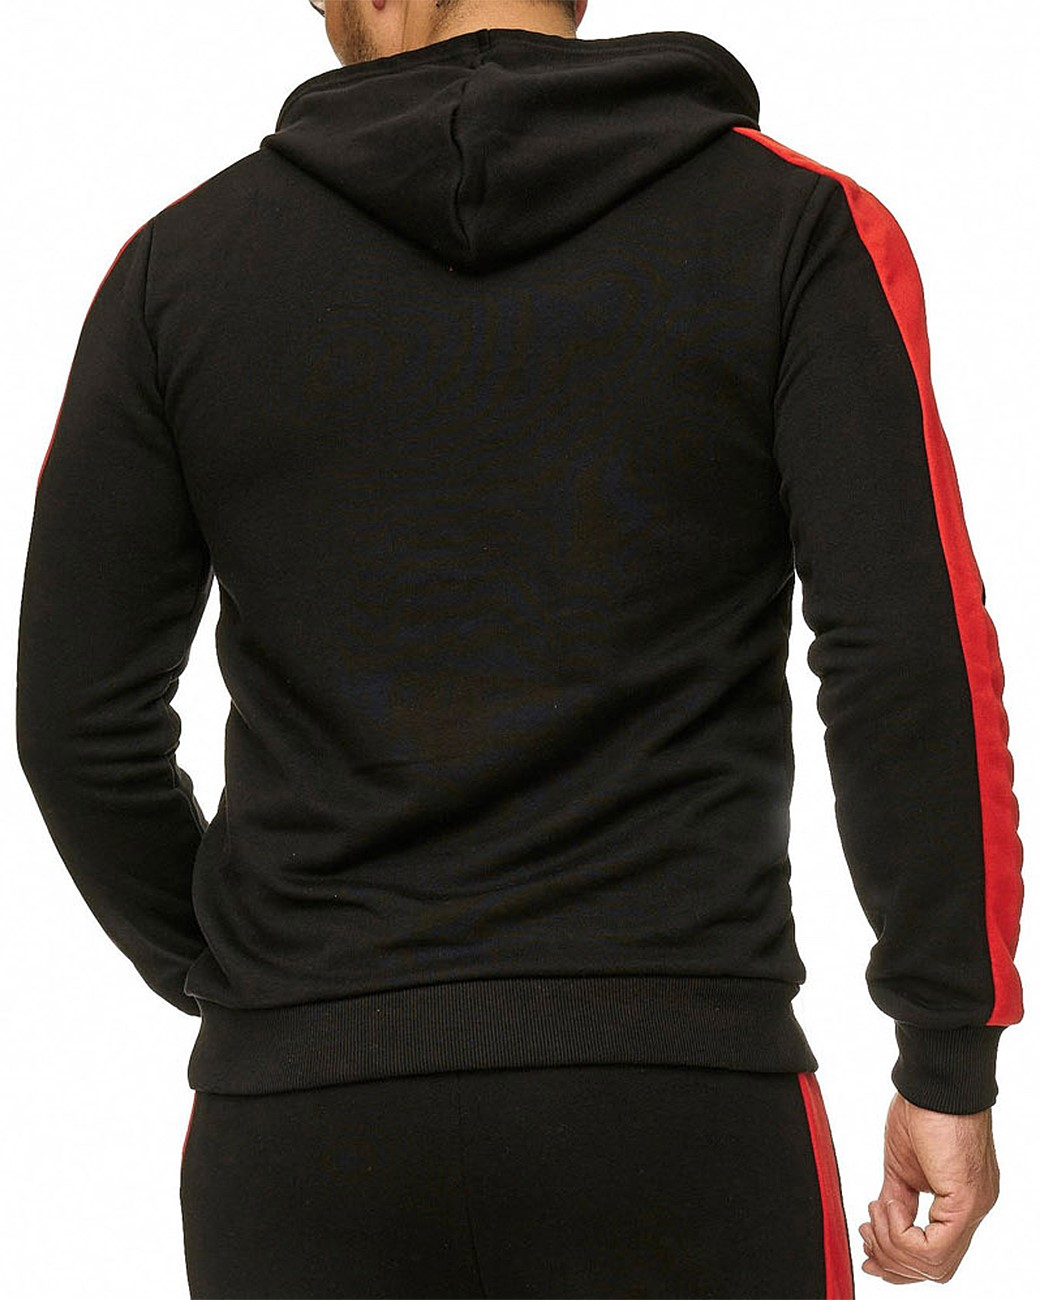 Redbridge-senores-regular-fit-chandal-fitness-sueter-aerobic-pantalones miniatura 34